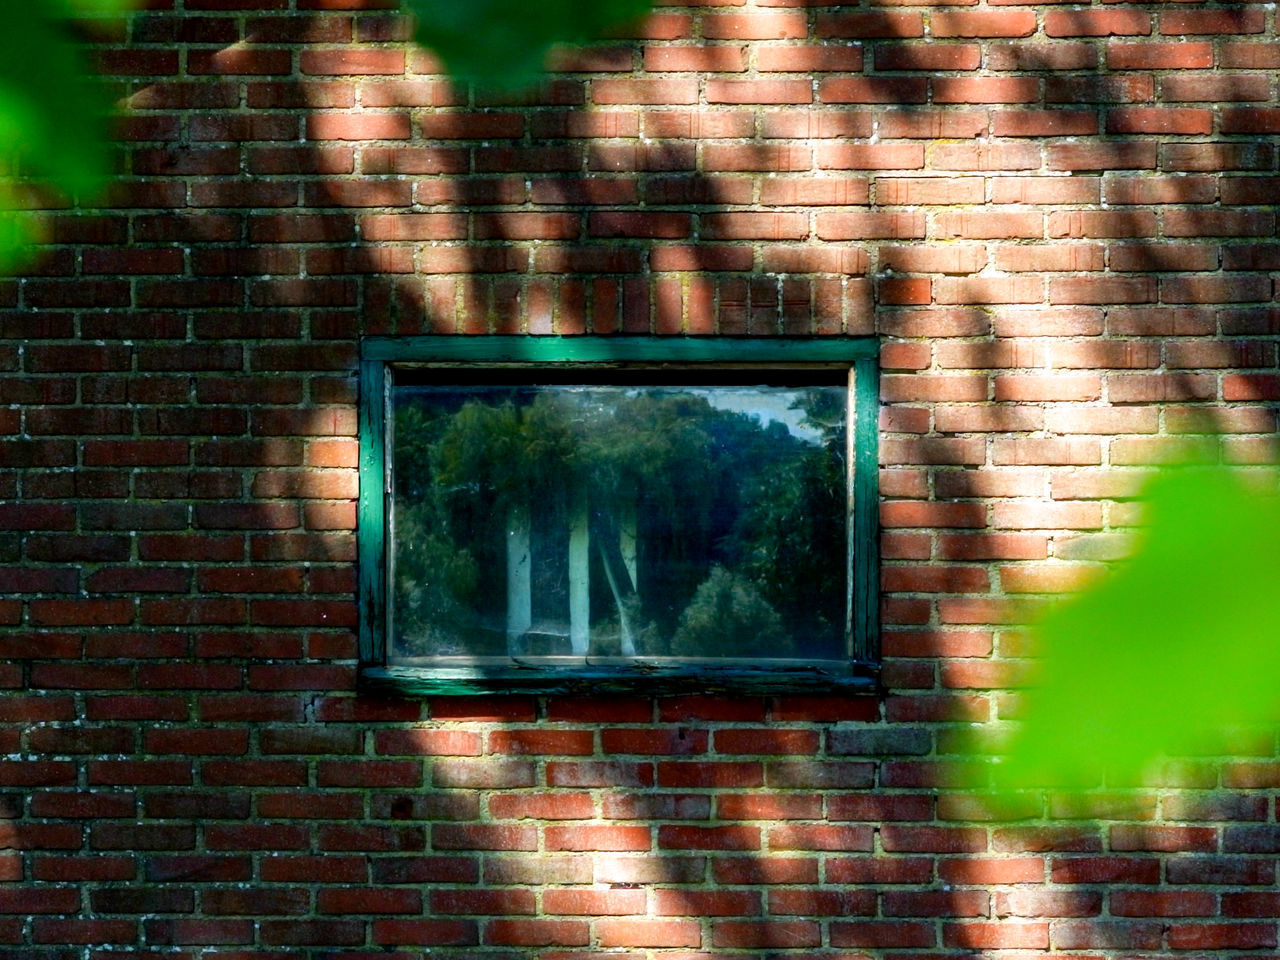 REFLECTION OF BUILDING ON WINDOW